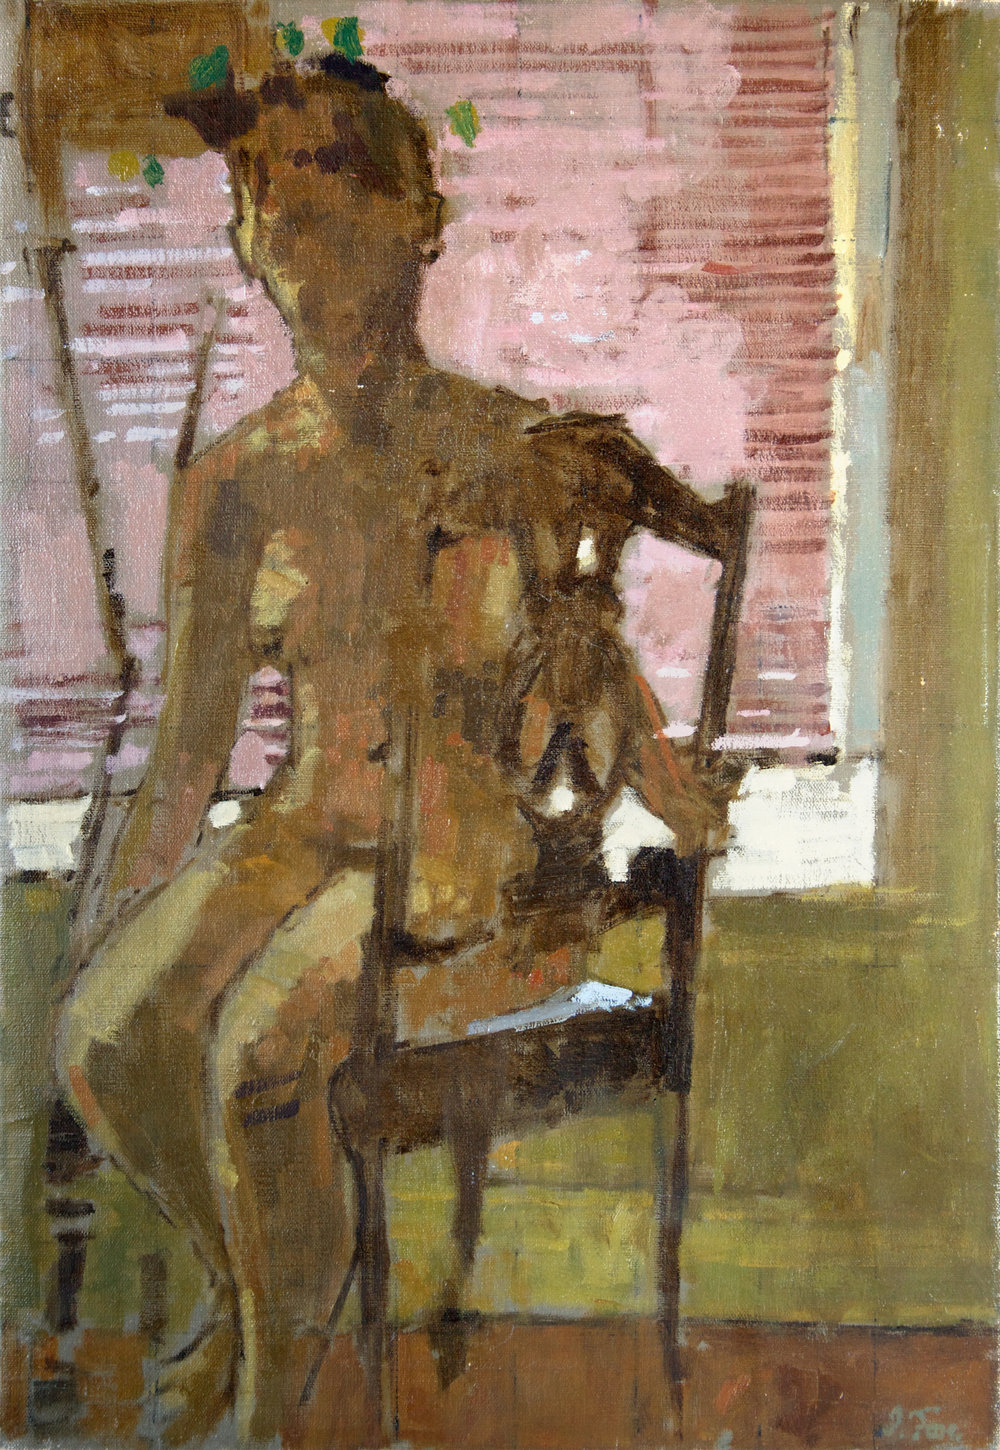 1956_Nude_on_chair_oil_on_linen_26x18in_PF366.jpg